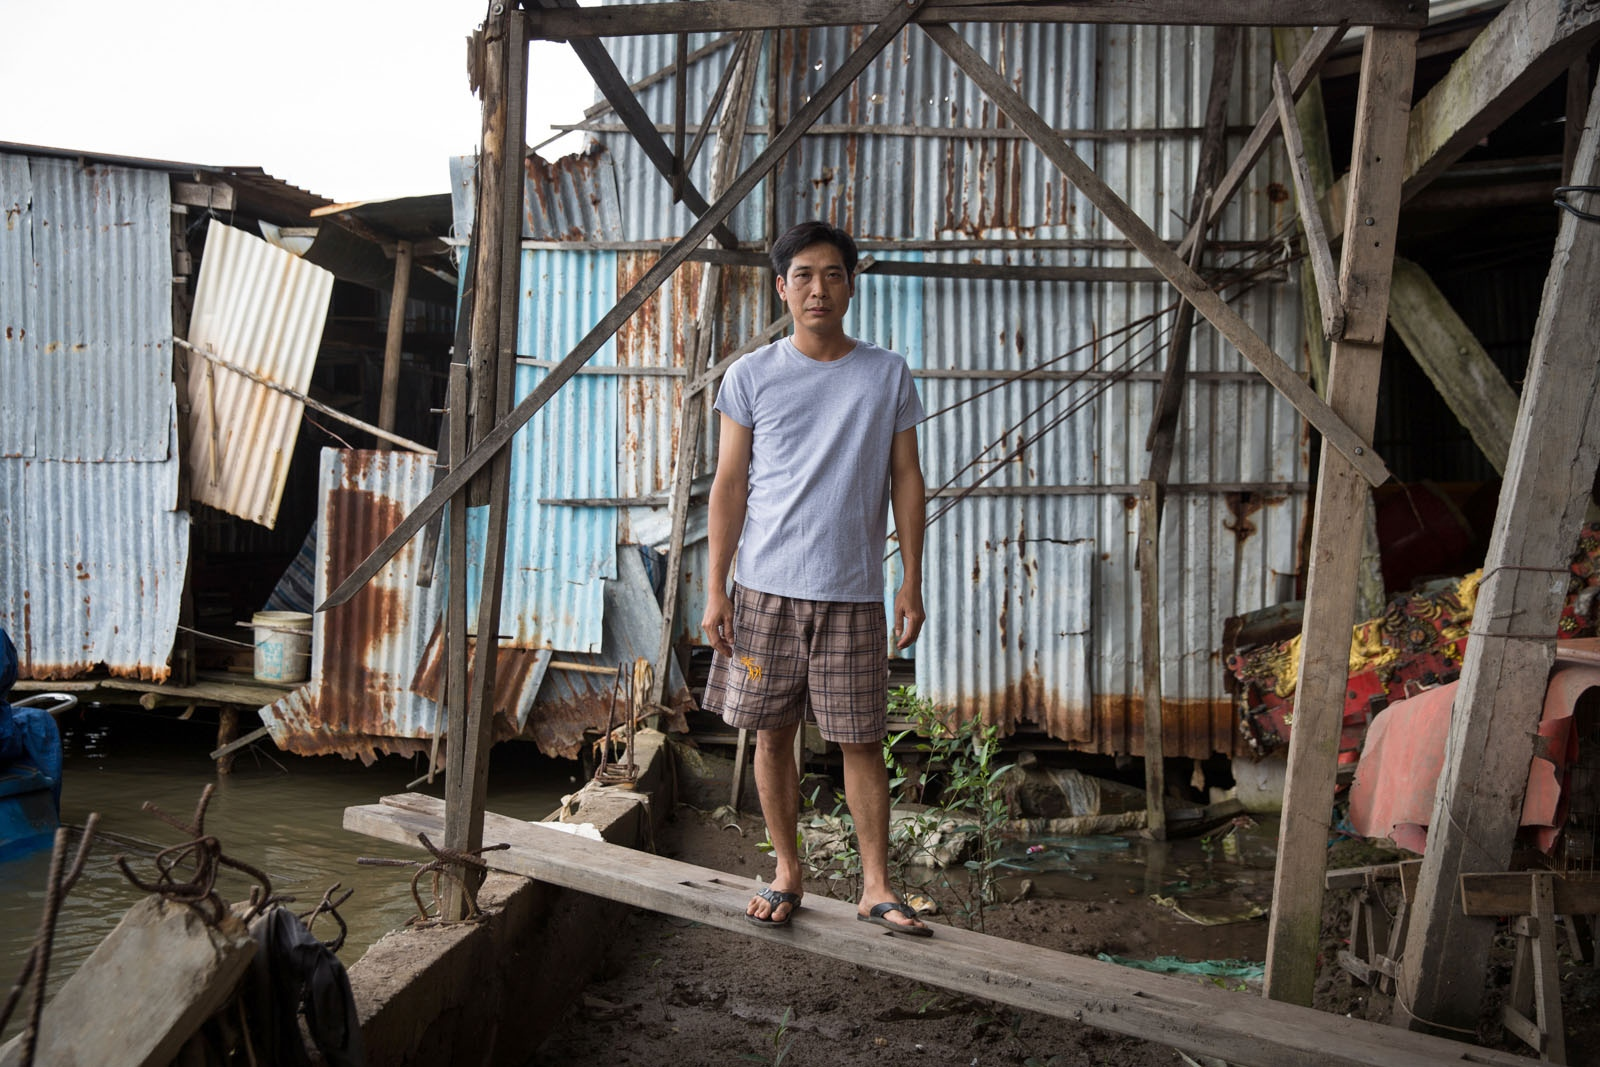 Truong Minh Thnan, 36, stands in part of his family house in Nam Can town which has collapsed in to the Kinh Tac River. His family-run business manufacturers coffins and they use the river to transport the heavy wooden coffins to customers. He said the problem of erosion began in 2006 and severely affects 47 communities in this district alone. Despite laying a foundation of two meters of cement under his house and placing steel-reinforced cement supports 30 meters down, it is still unstable.